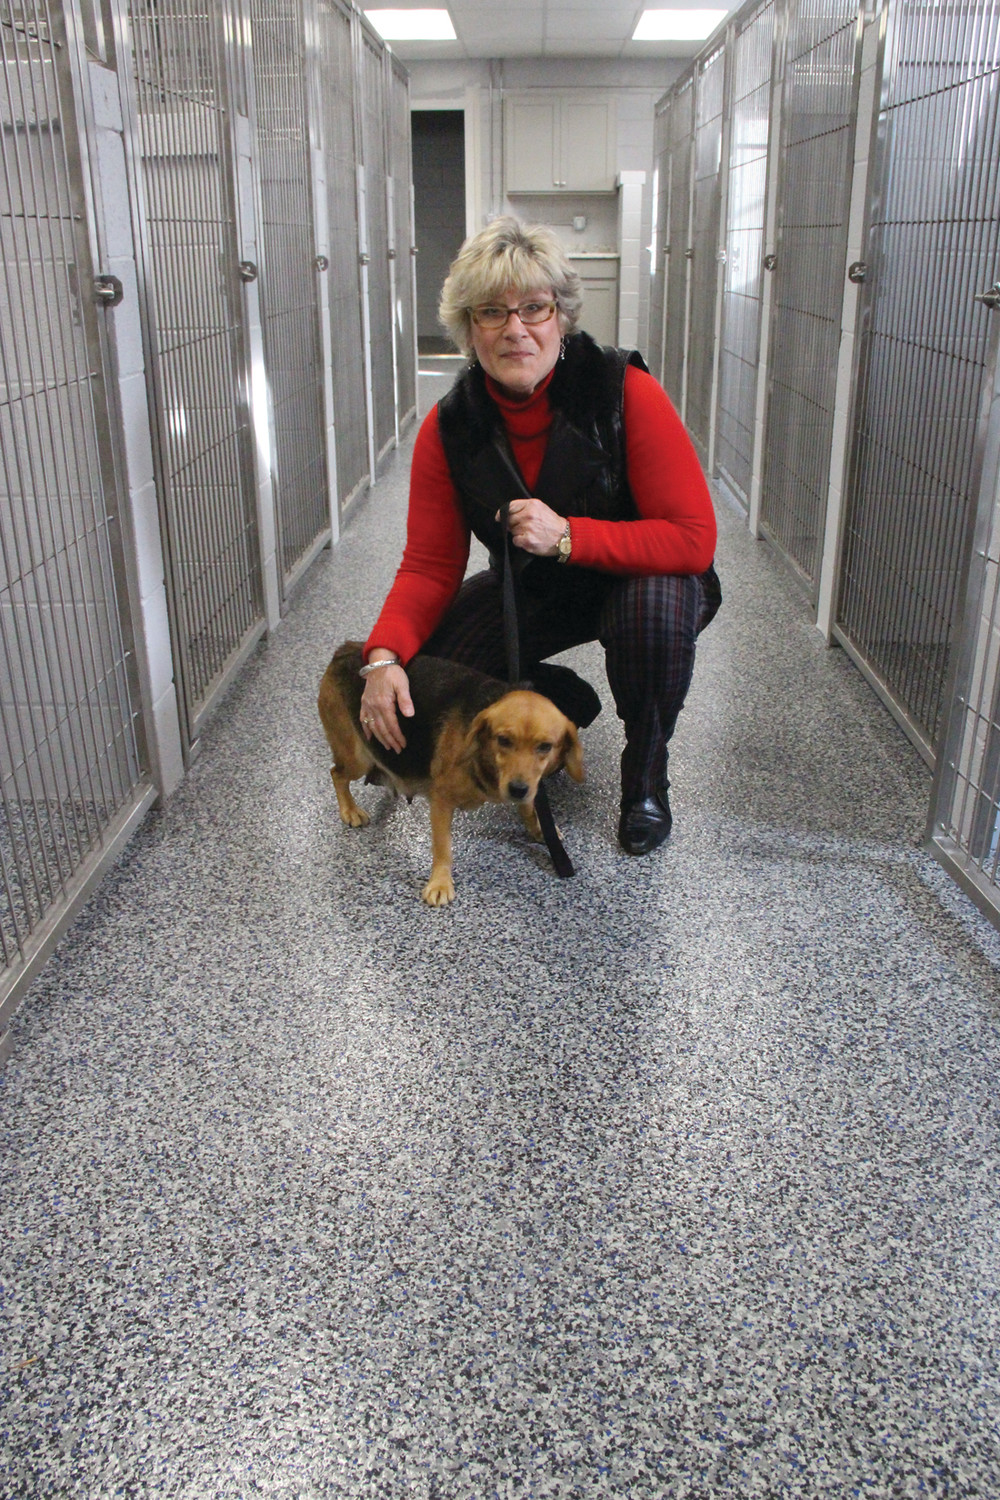 CHECKING IT OUT: Patti Reppucci, who has volunteered at the league for several years, takes a recent rescue for a look-see of the new facilities. The dog is staying with a foster family until it has a home.